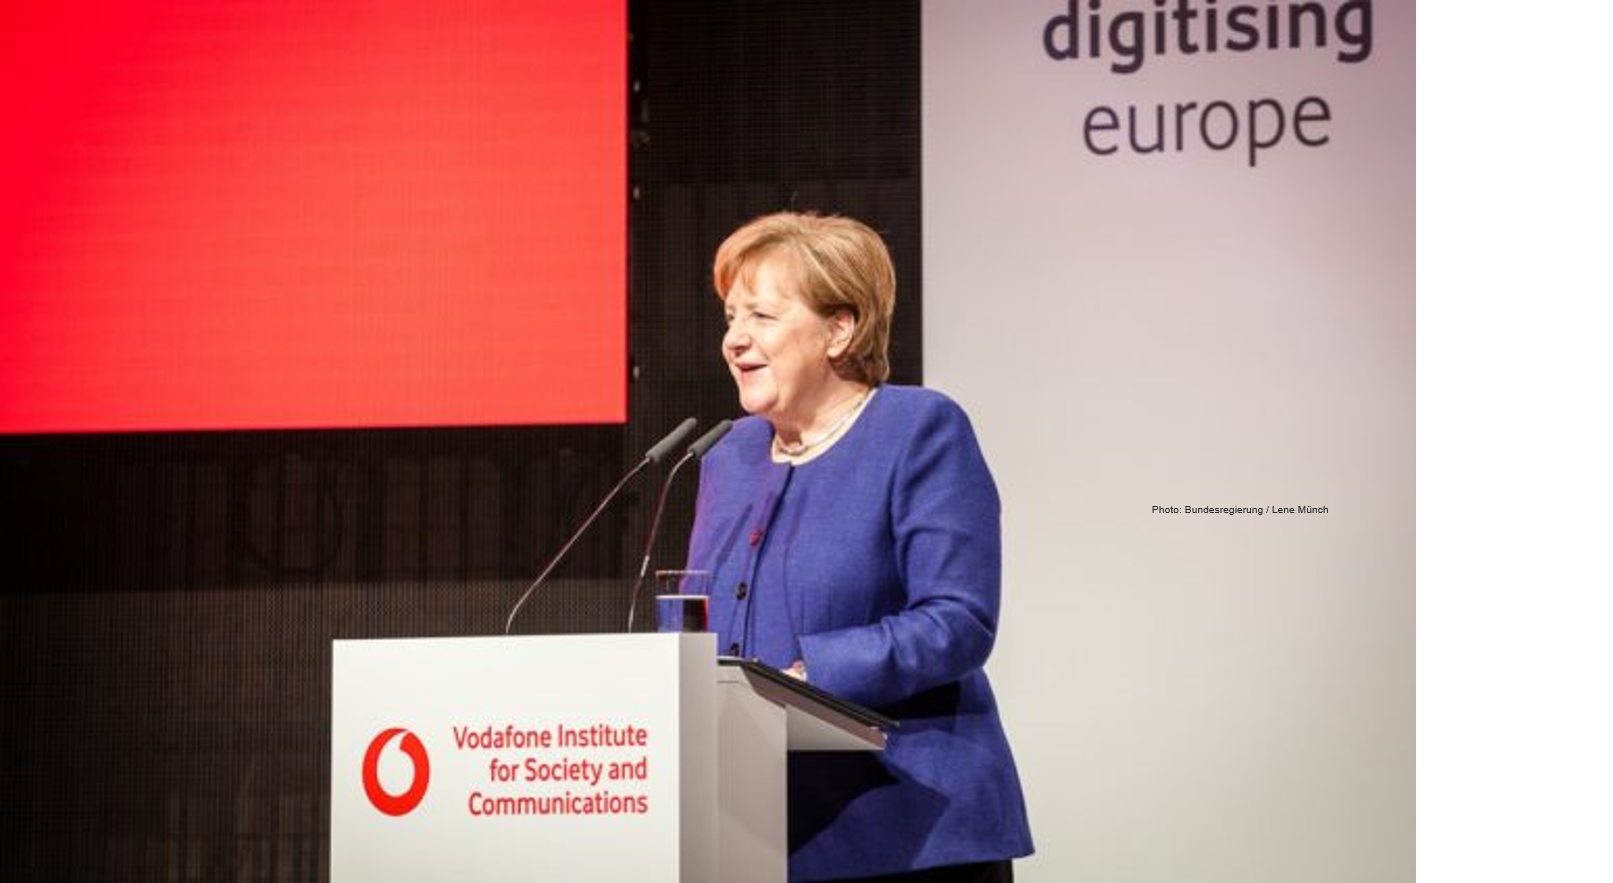 Fast-track Europe's transformation to build a prosperous digital future